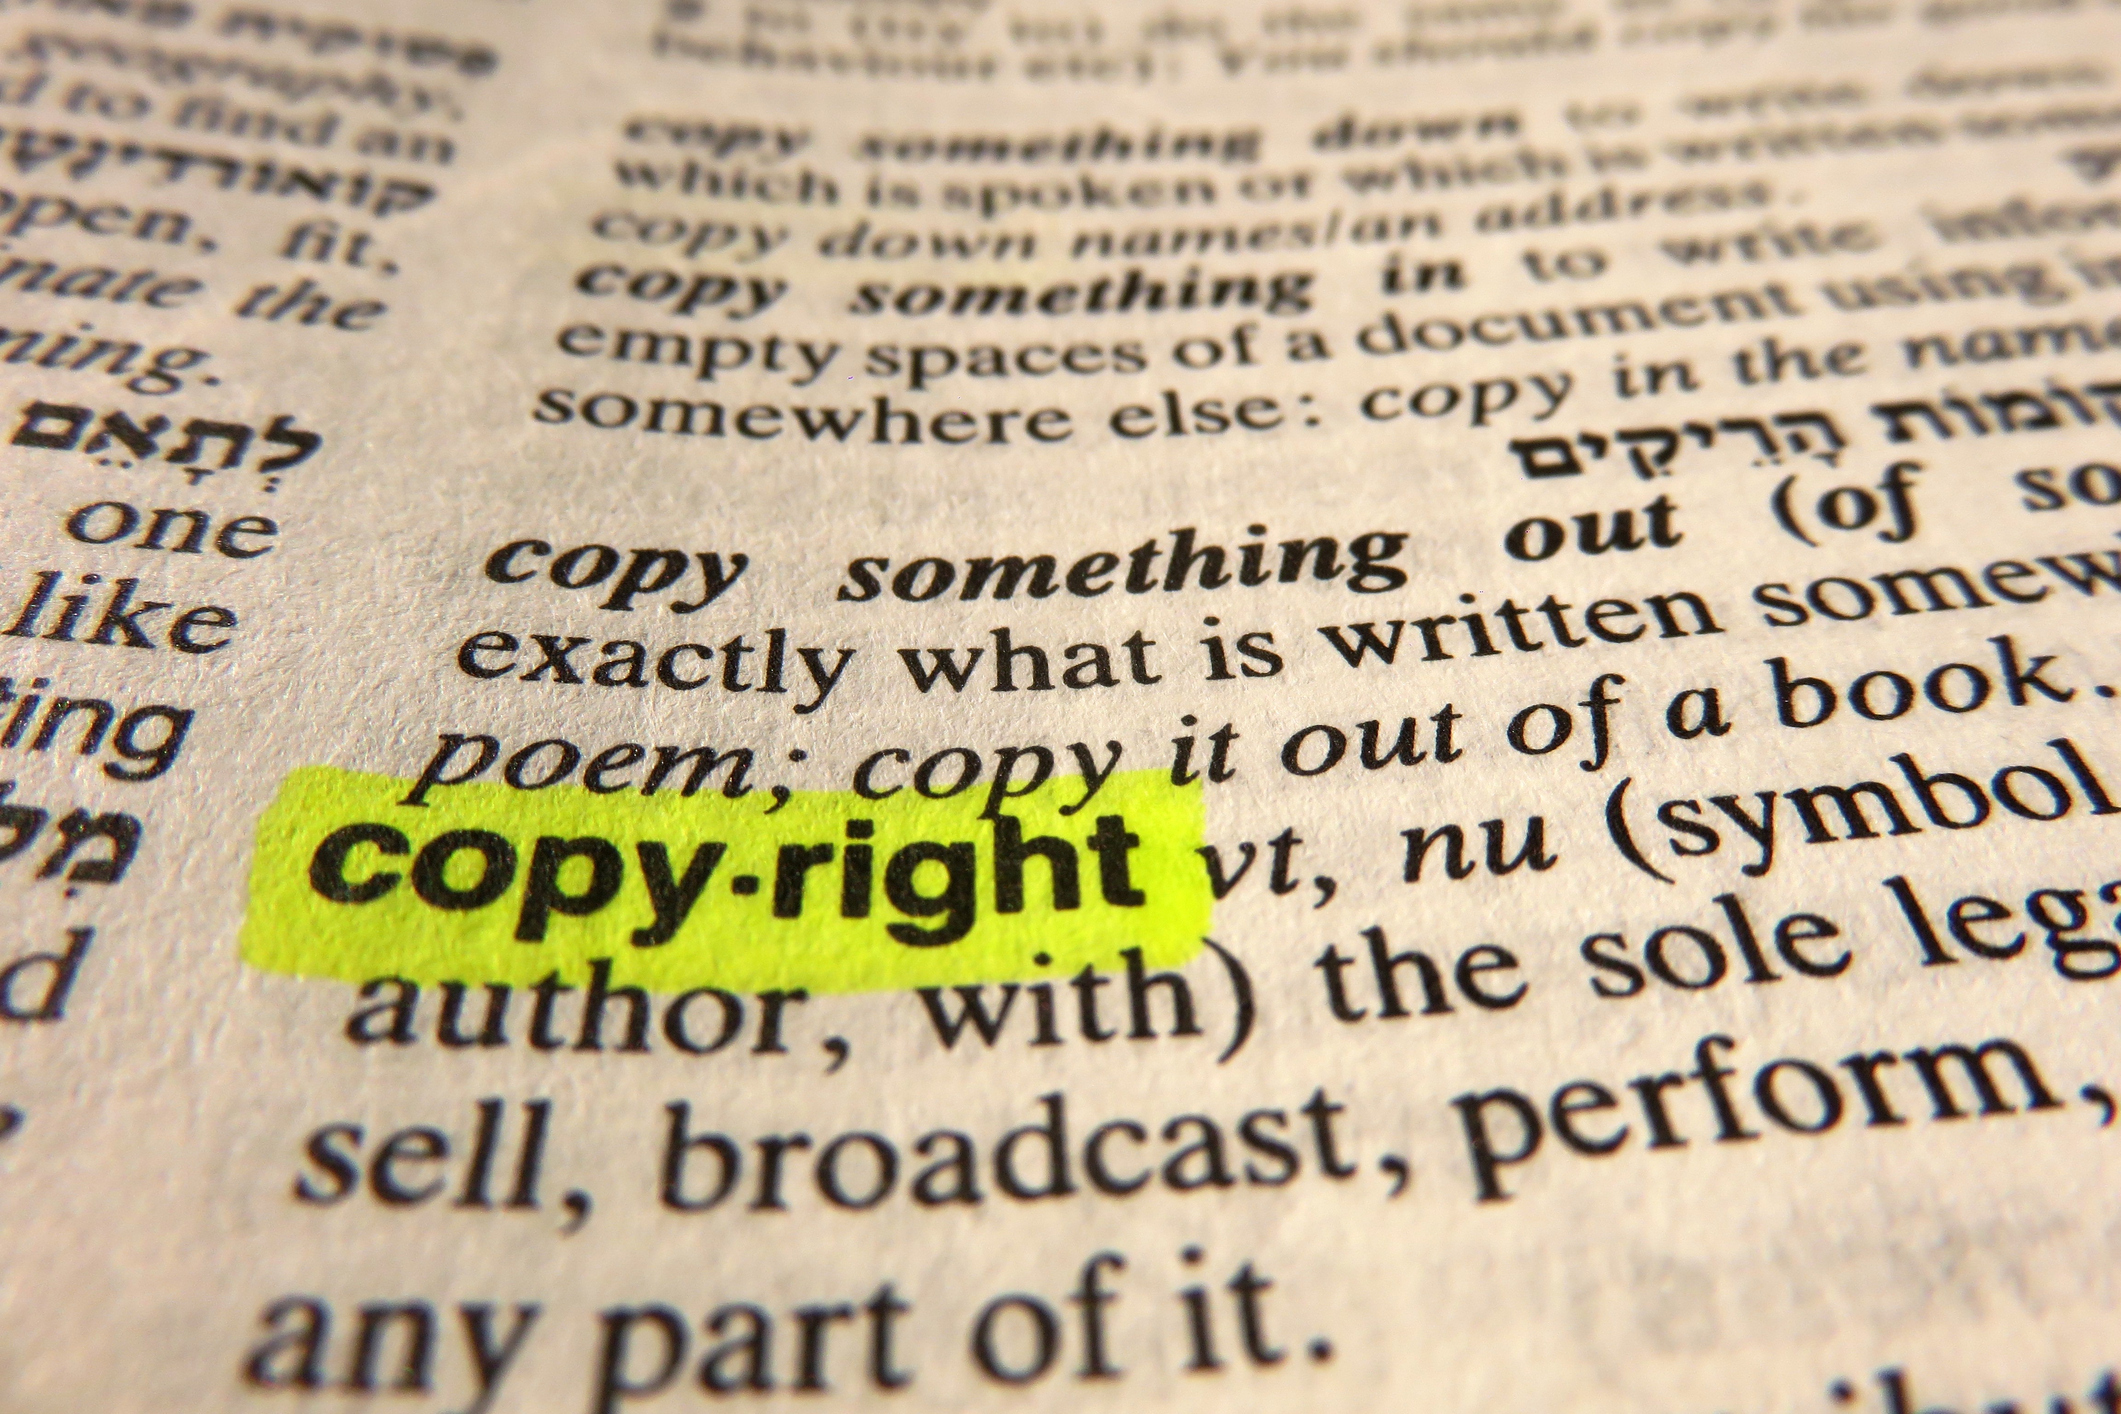 COPYRIGHTS - Copyrights protect original expressions of ideas in various forms, such as stories, poems, plays, dances, paintings, photographs, sculpture, sound recordings, architectural designs, software, and radio and television broadcasts.